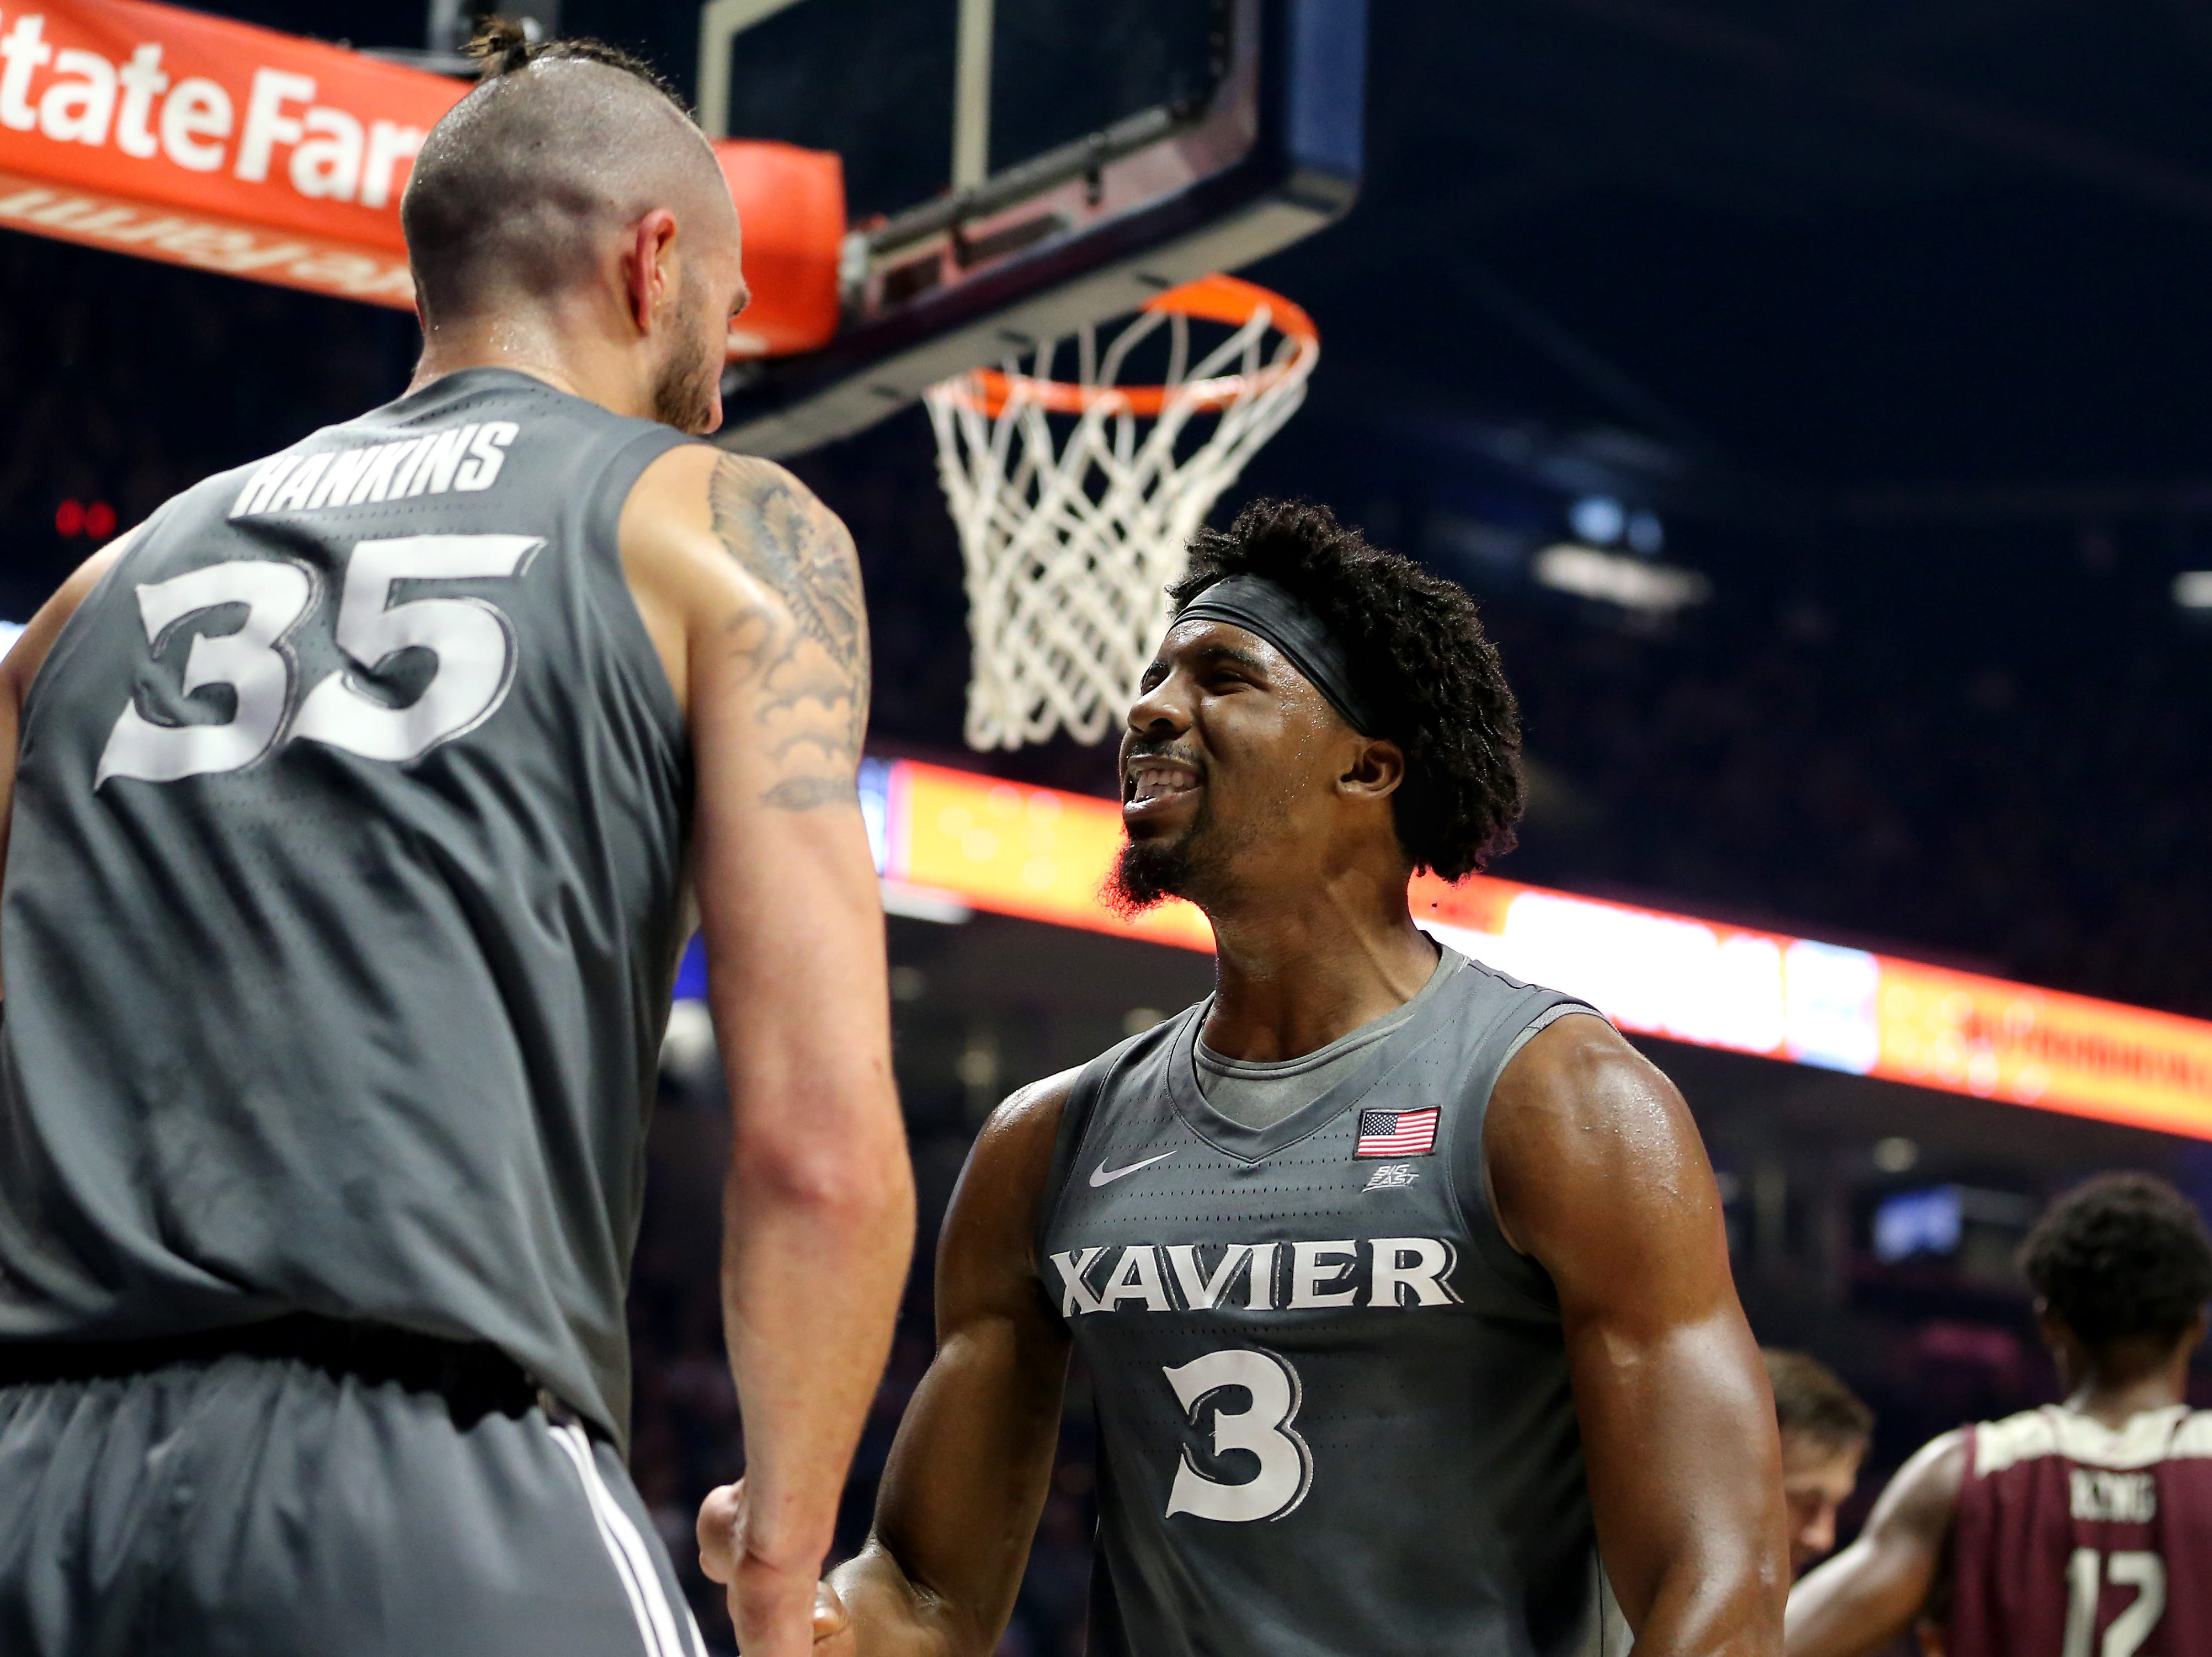 Xavier Musketeers guard Quentin Goodin (3) congratulates Xavier Musketeers forward Zach Hankins (35) on a made basket and a foul in the first half of an NCAA college basketball game Eastern Kentucky Colonels, Saturday, Dec. 15, 2018, at Cintas Center in Cincinnati, Ohio